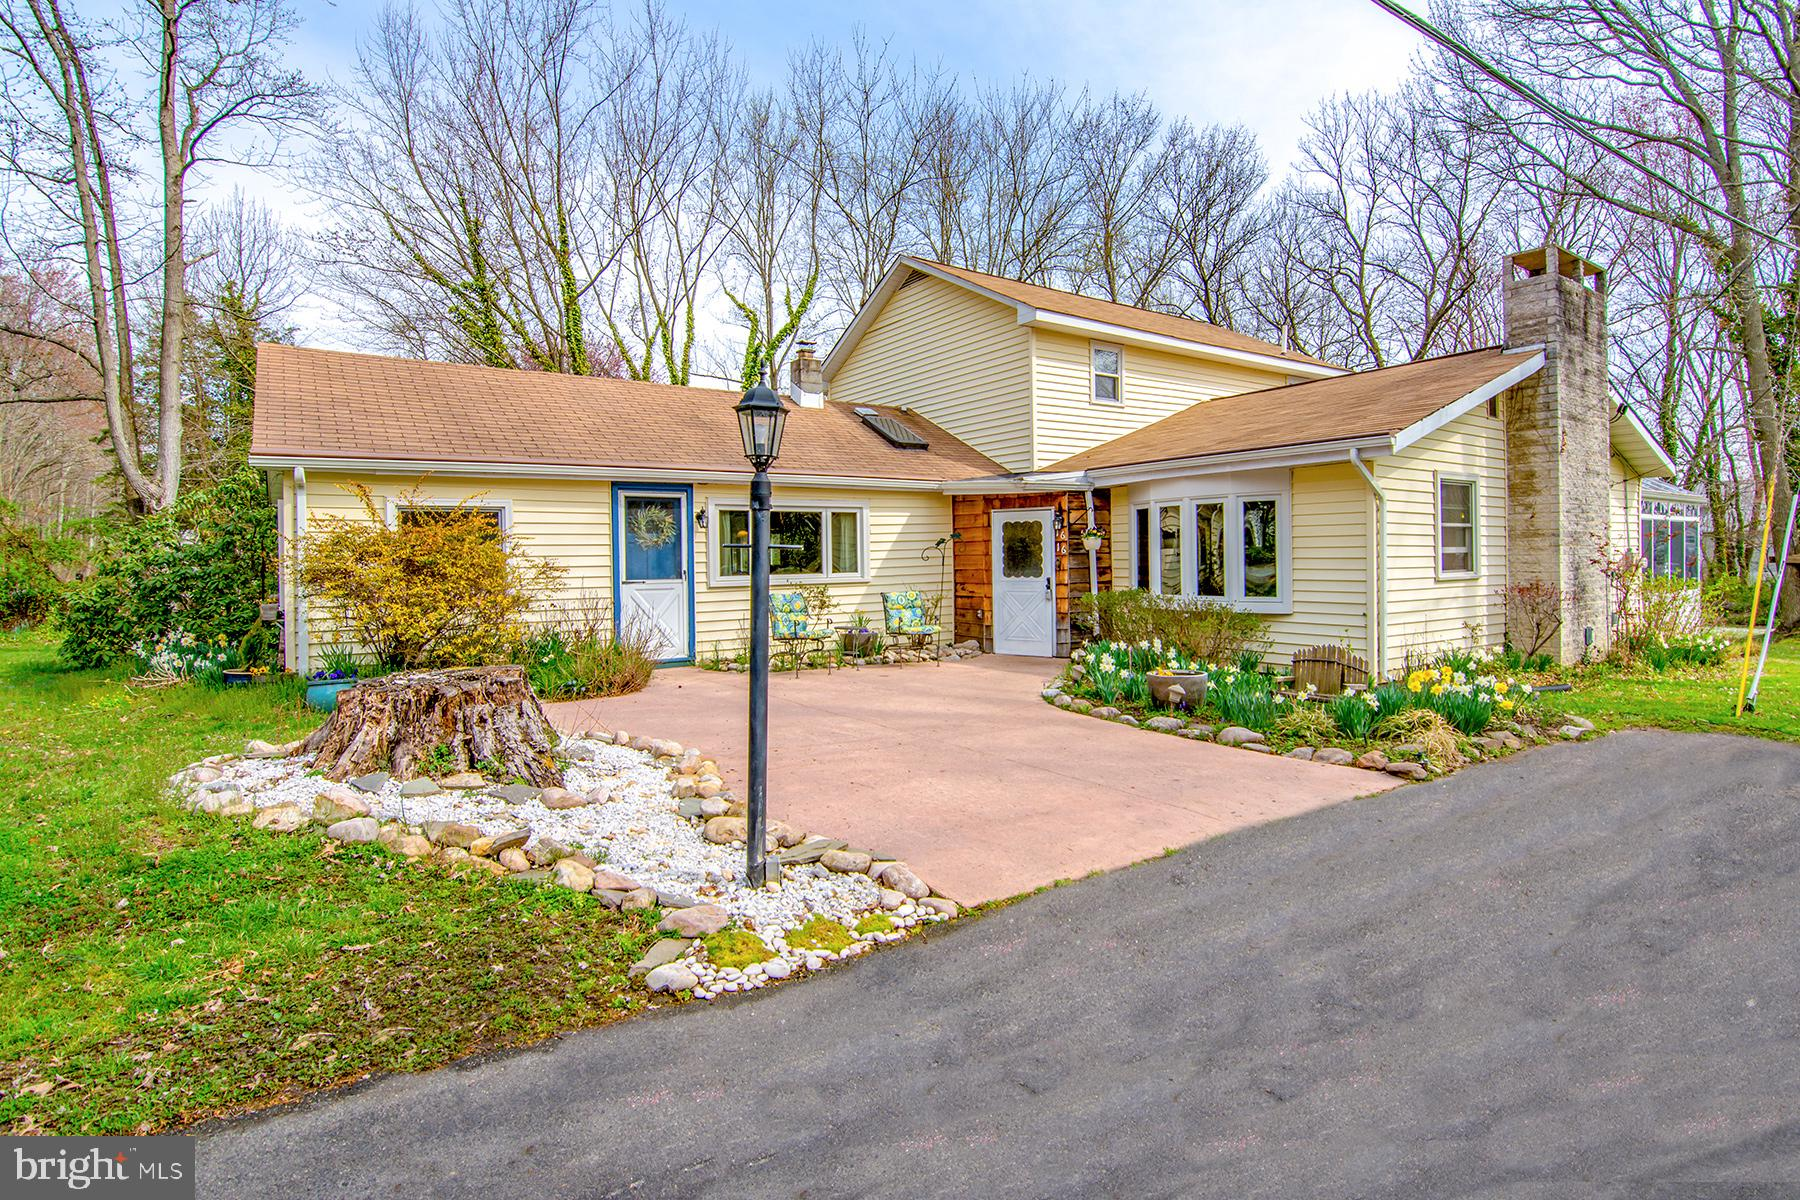 1616 CARPENTERS POINT ROAD, PERRYVILLE, MD 21903